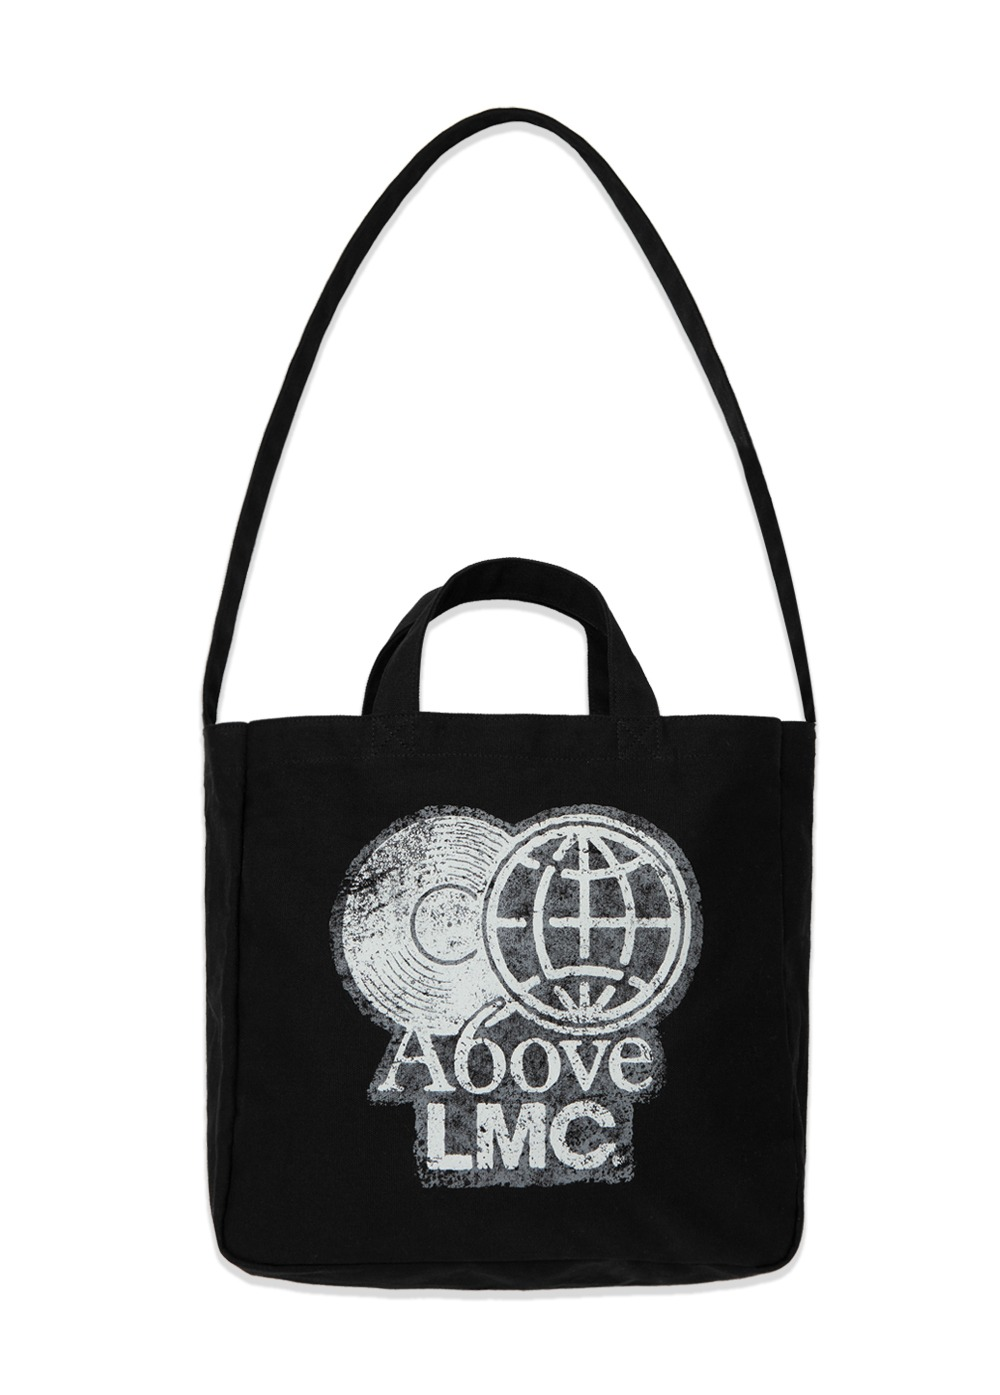 LMC X A6OVE FRIENDSHIP MIX CANVAS ECO BAG black